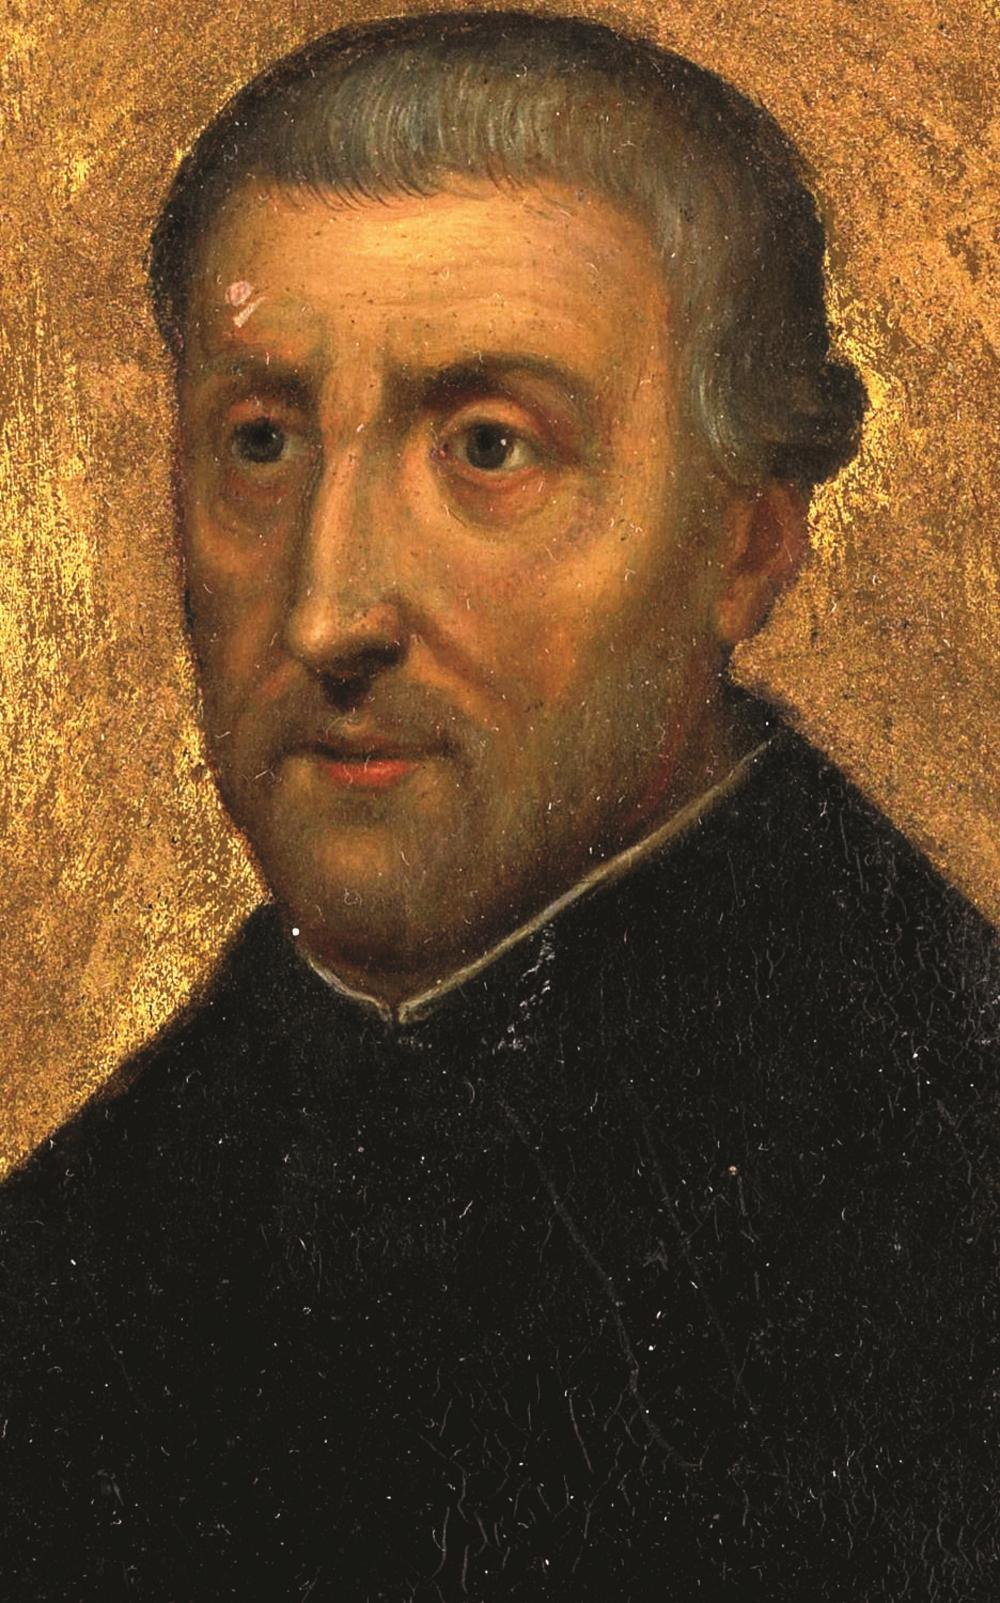 Learn and share the faith: St. Peter Canisius